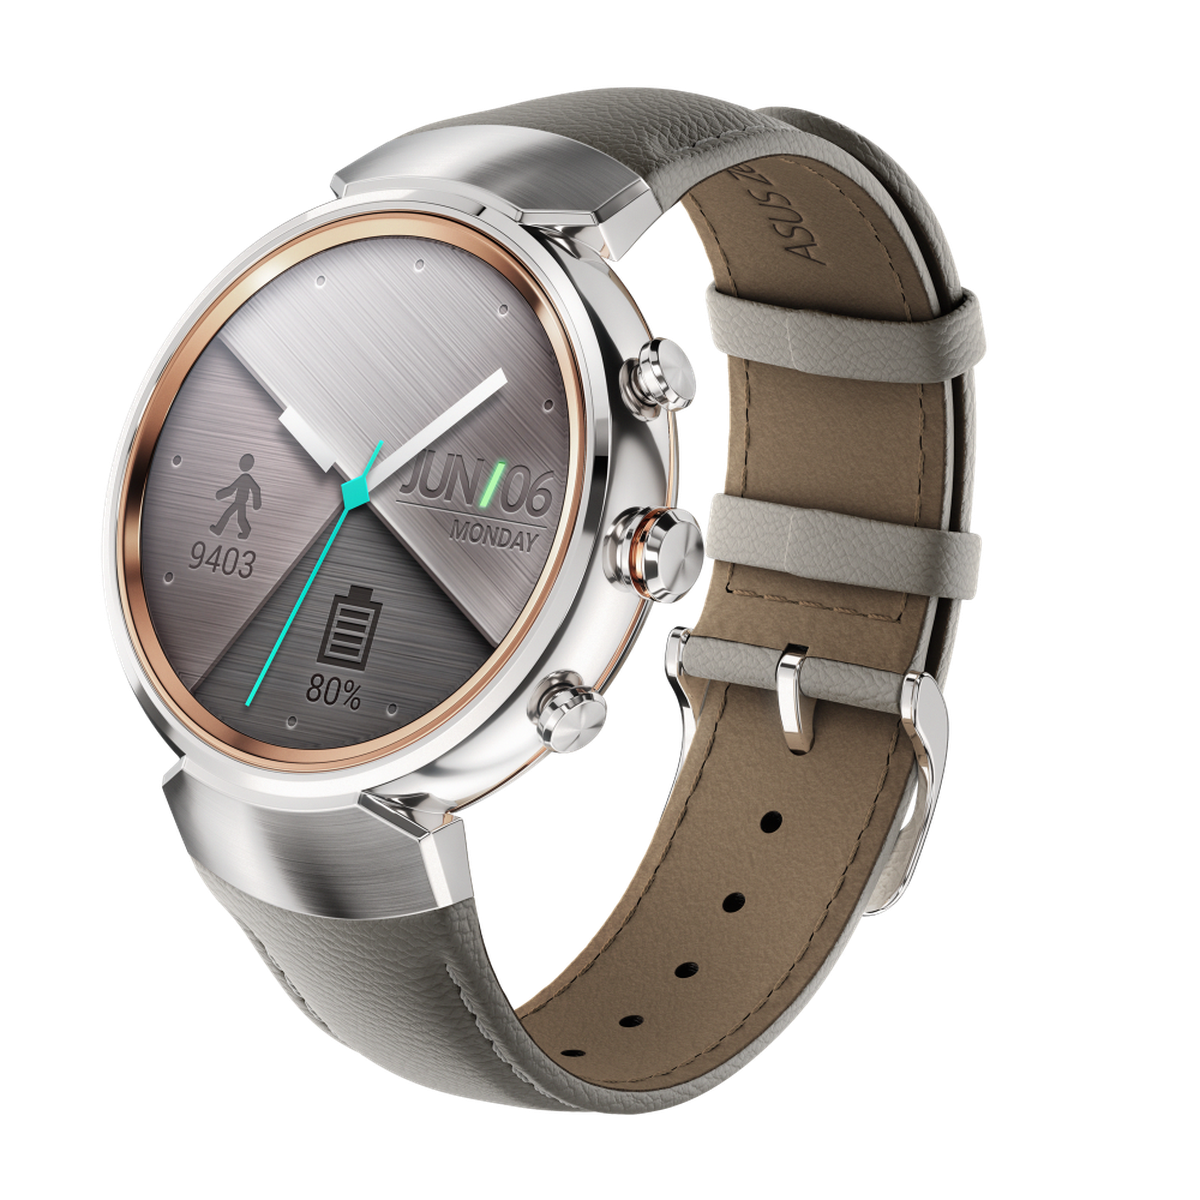 Asus' ZenWatch 3 looks way better than the first two